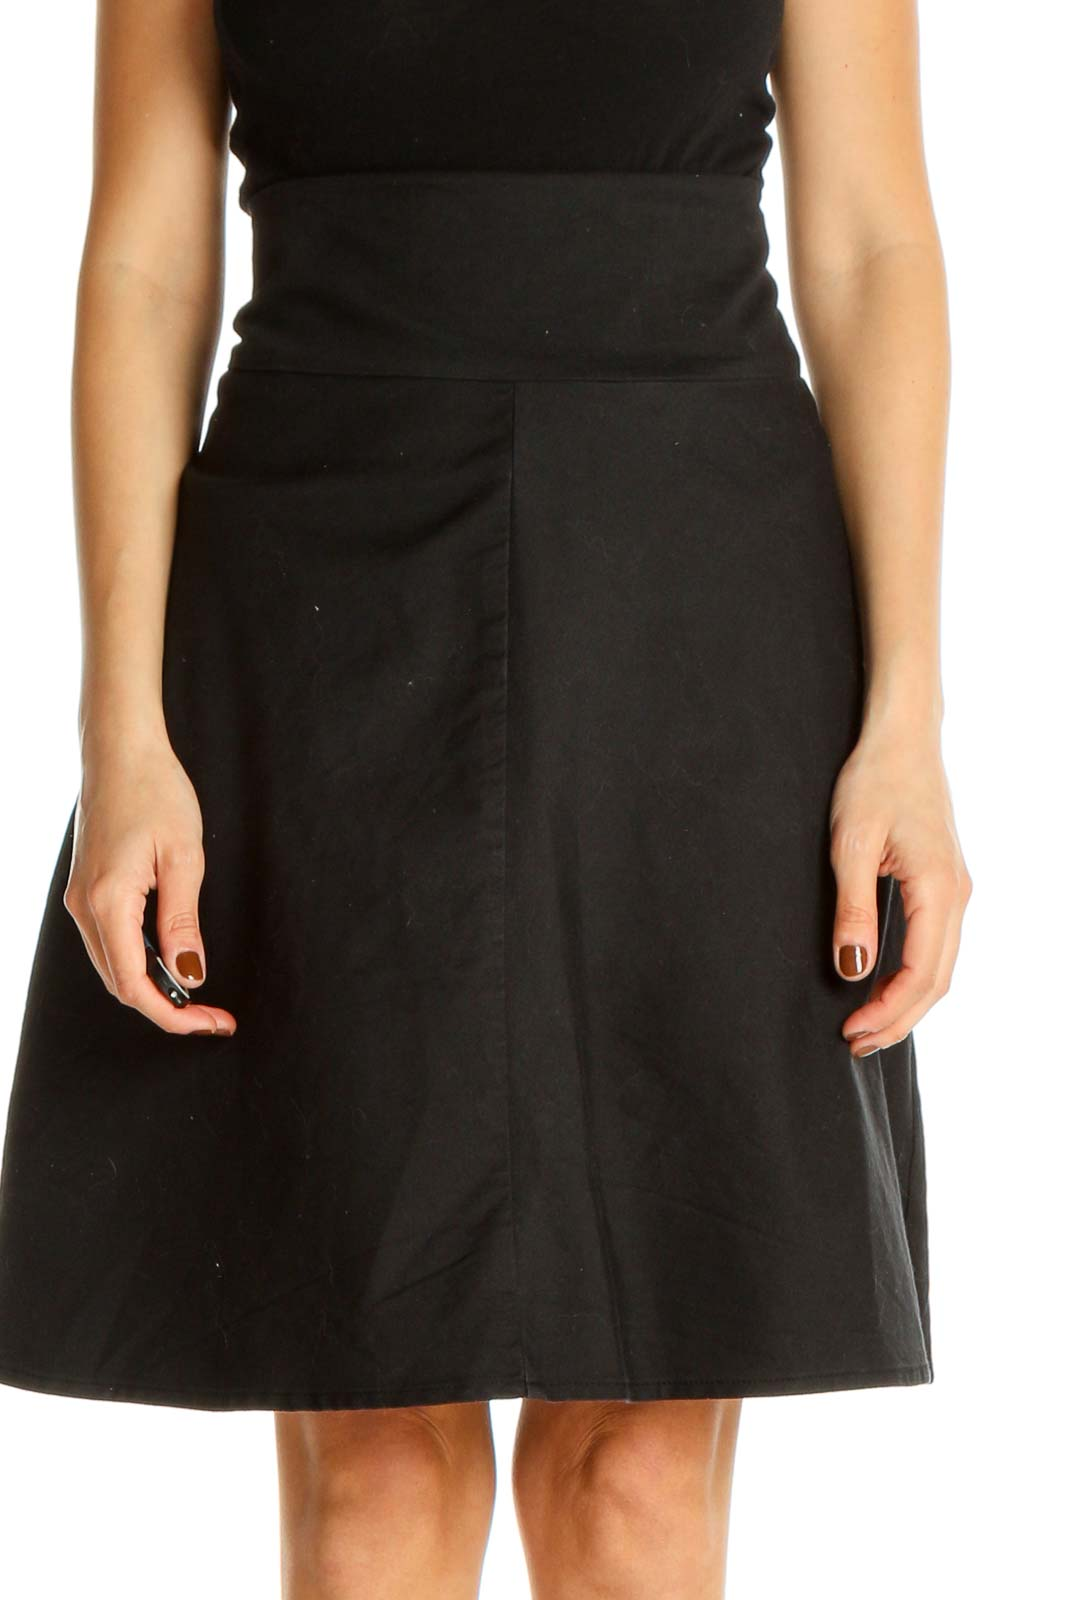 Black Solid Retro A-Line Skirt Front